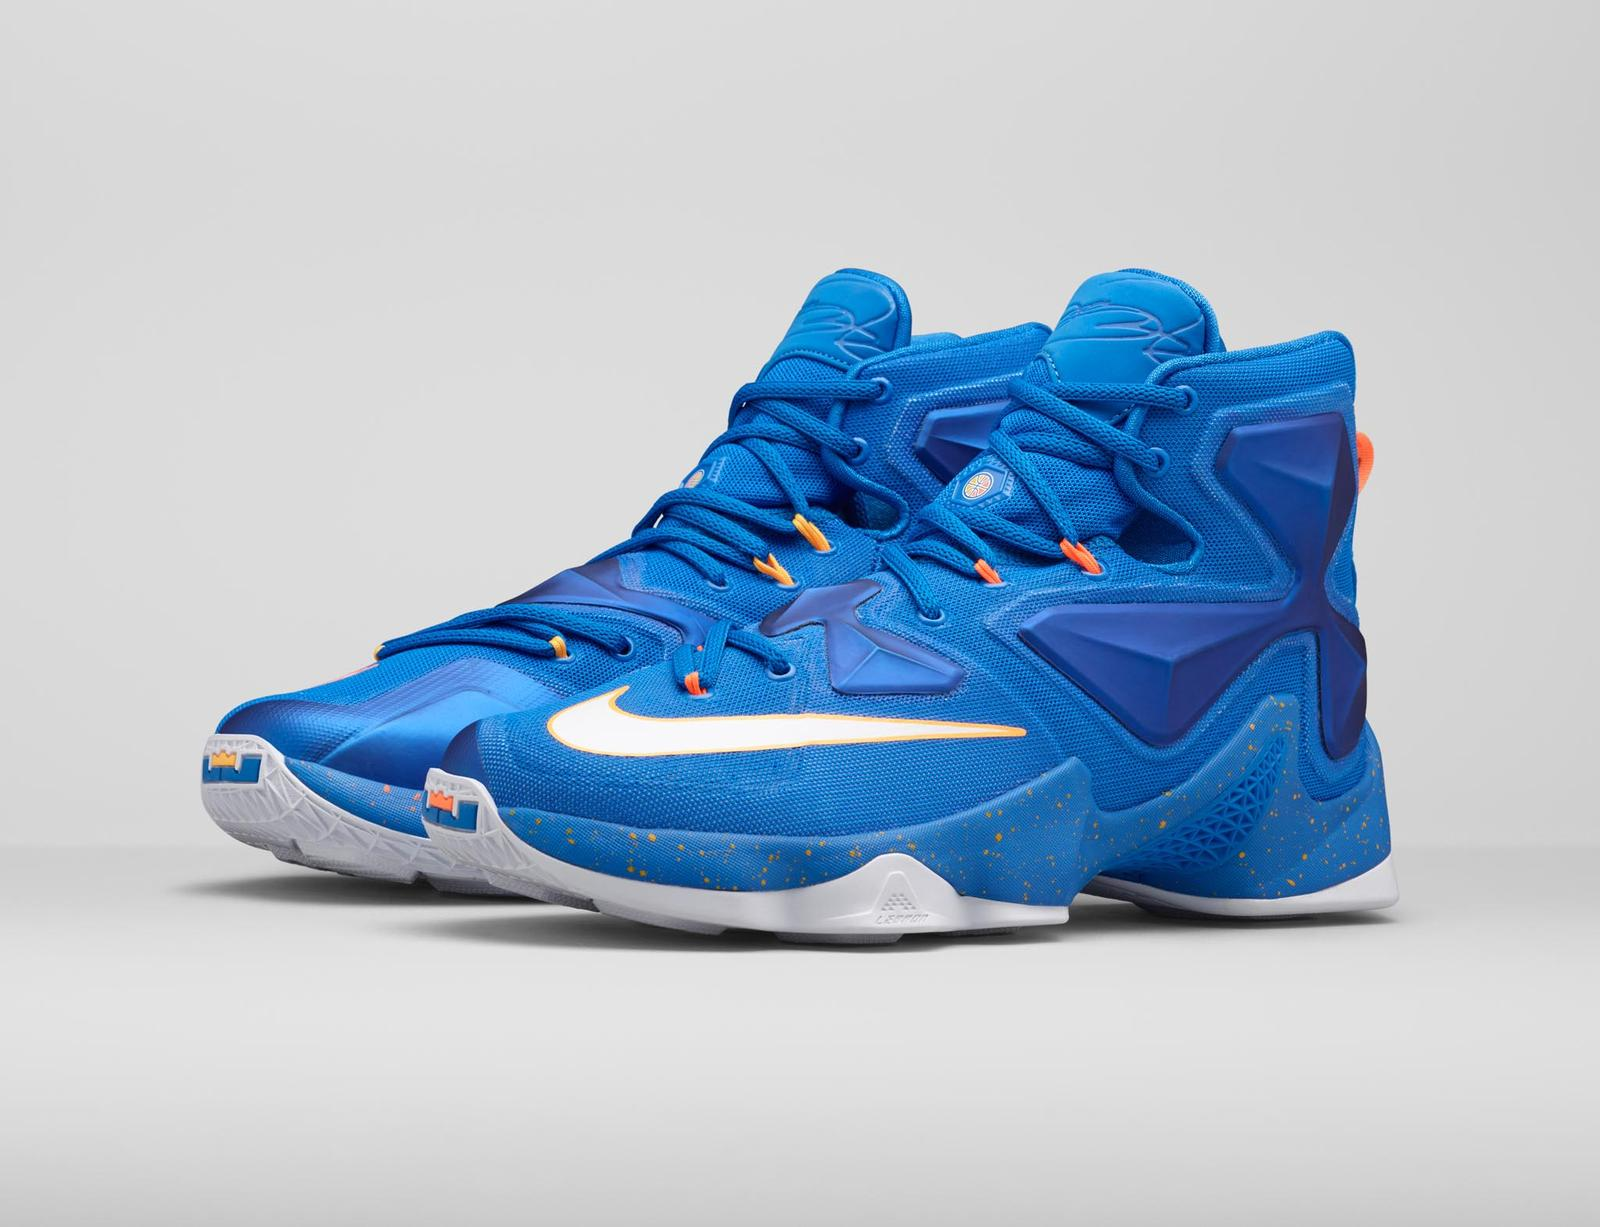 online retailer 91637 5f13a Introducing the LEBRON 13 Balance Shoe - Nike News